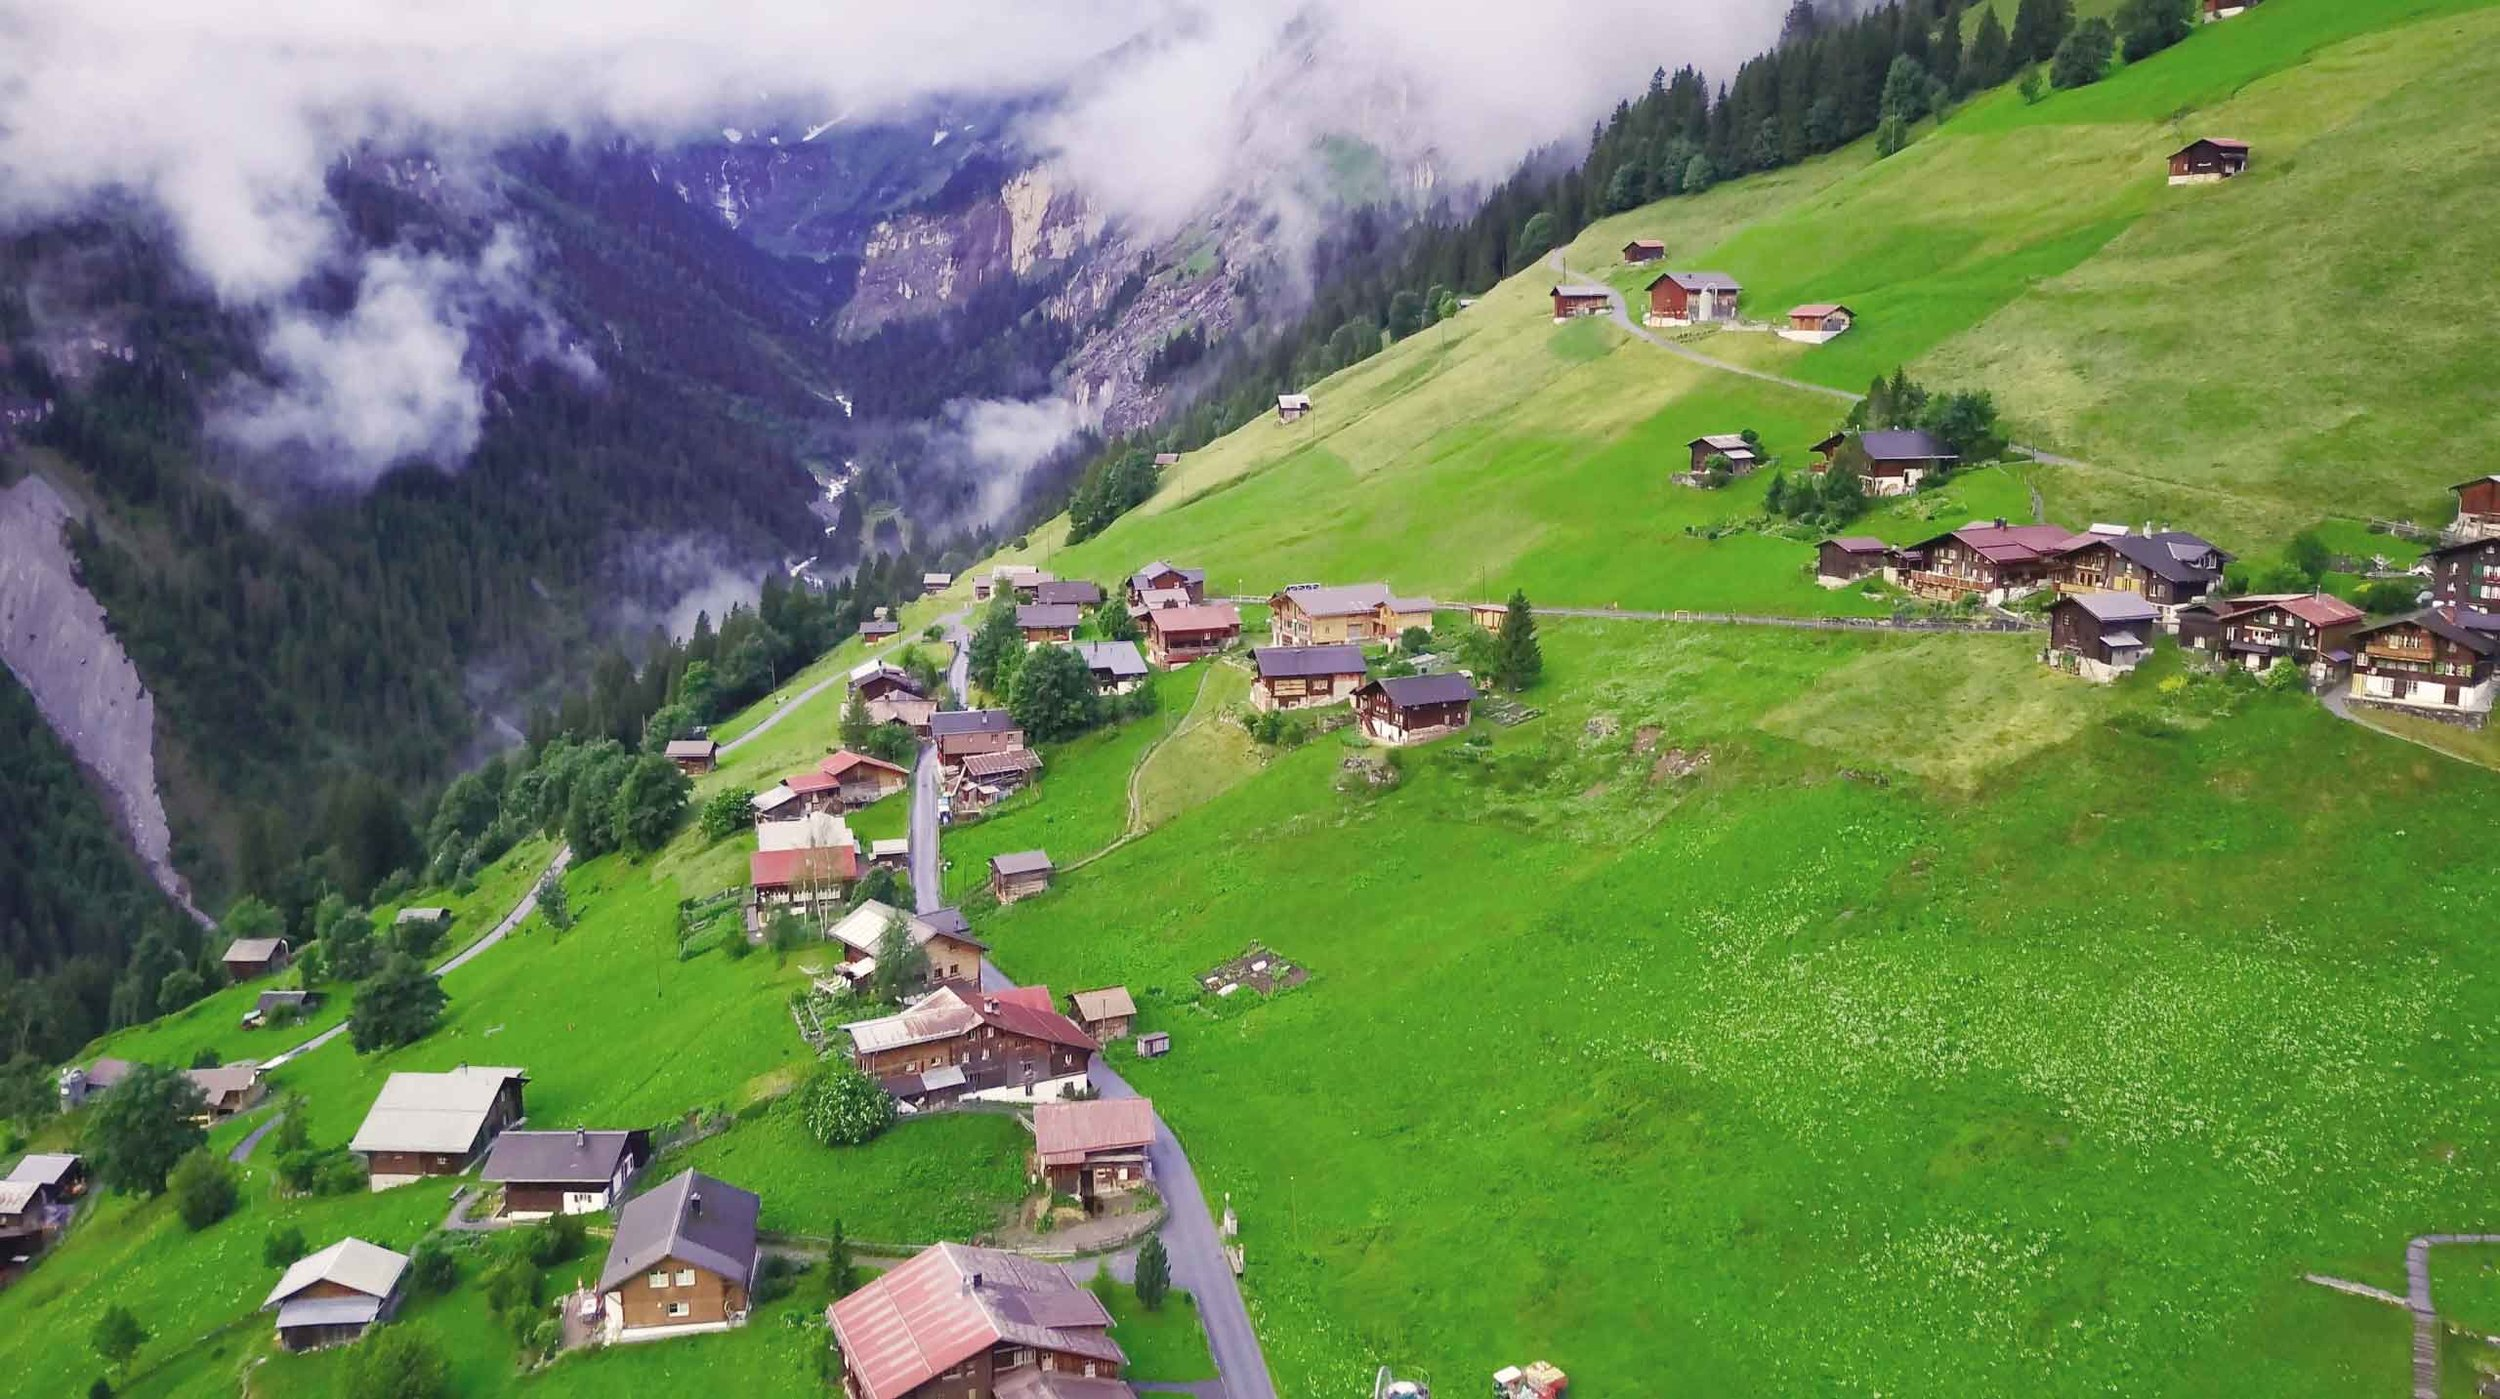 Gimmelwald from above.